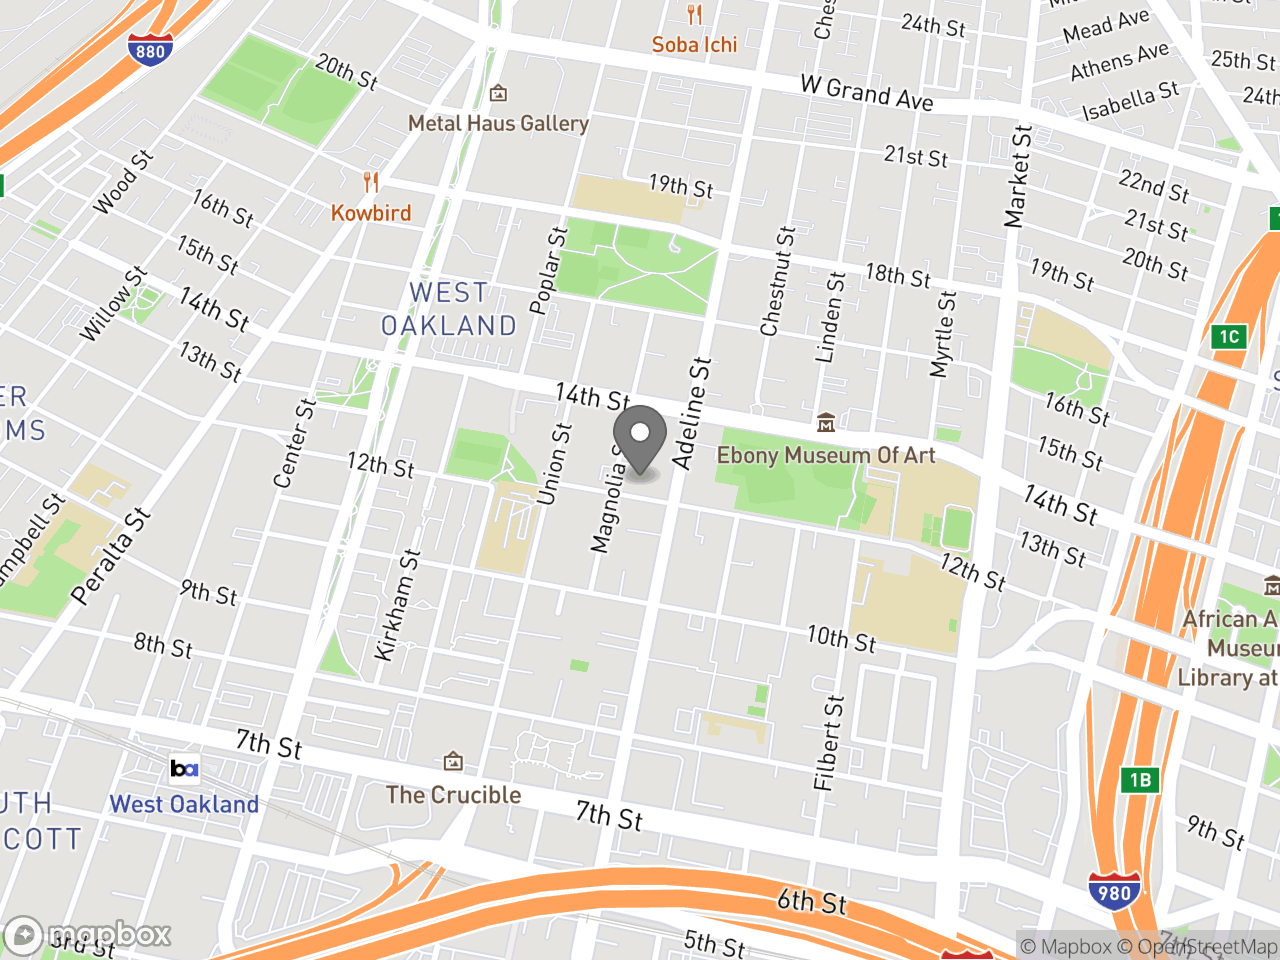 Map location for Police Commission Special Meeting February 16, 2019 Public Hearing on Policing in the Homeless Community, located at 1188 12th Street in Oakland, CA 94607